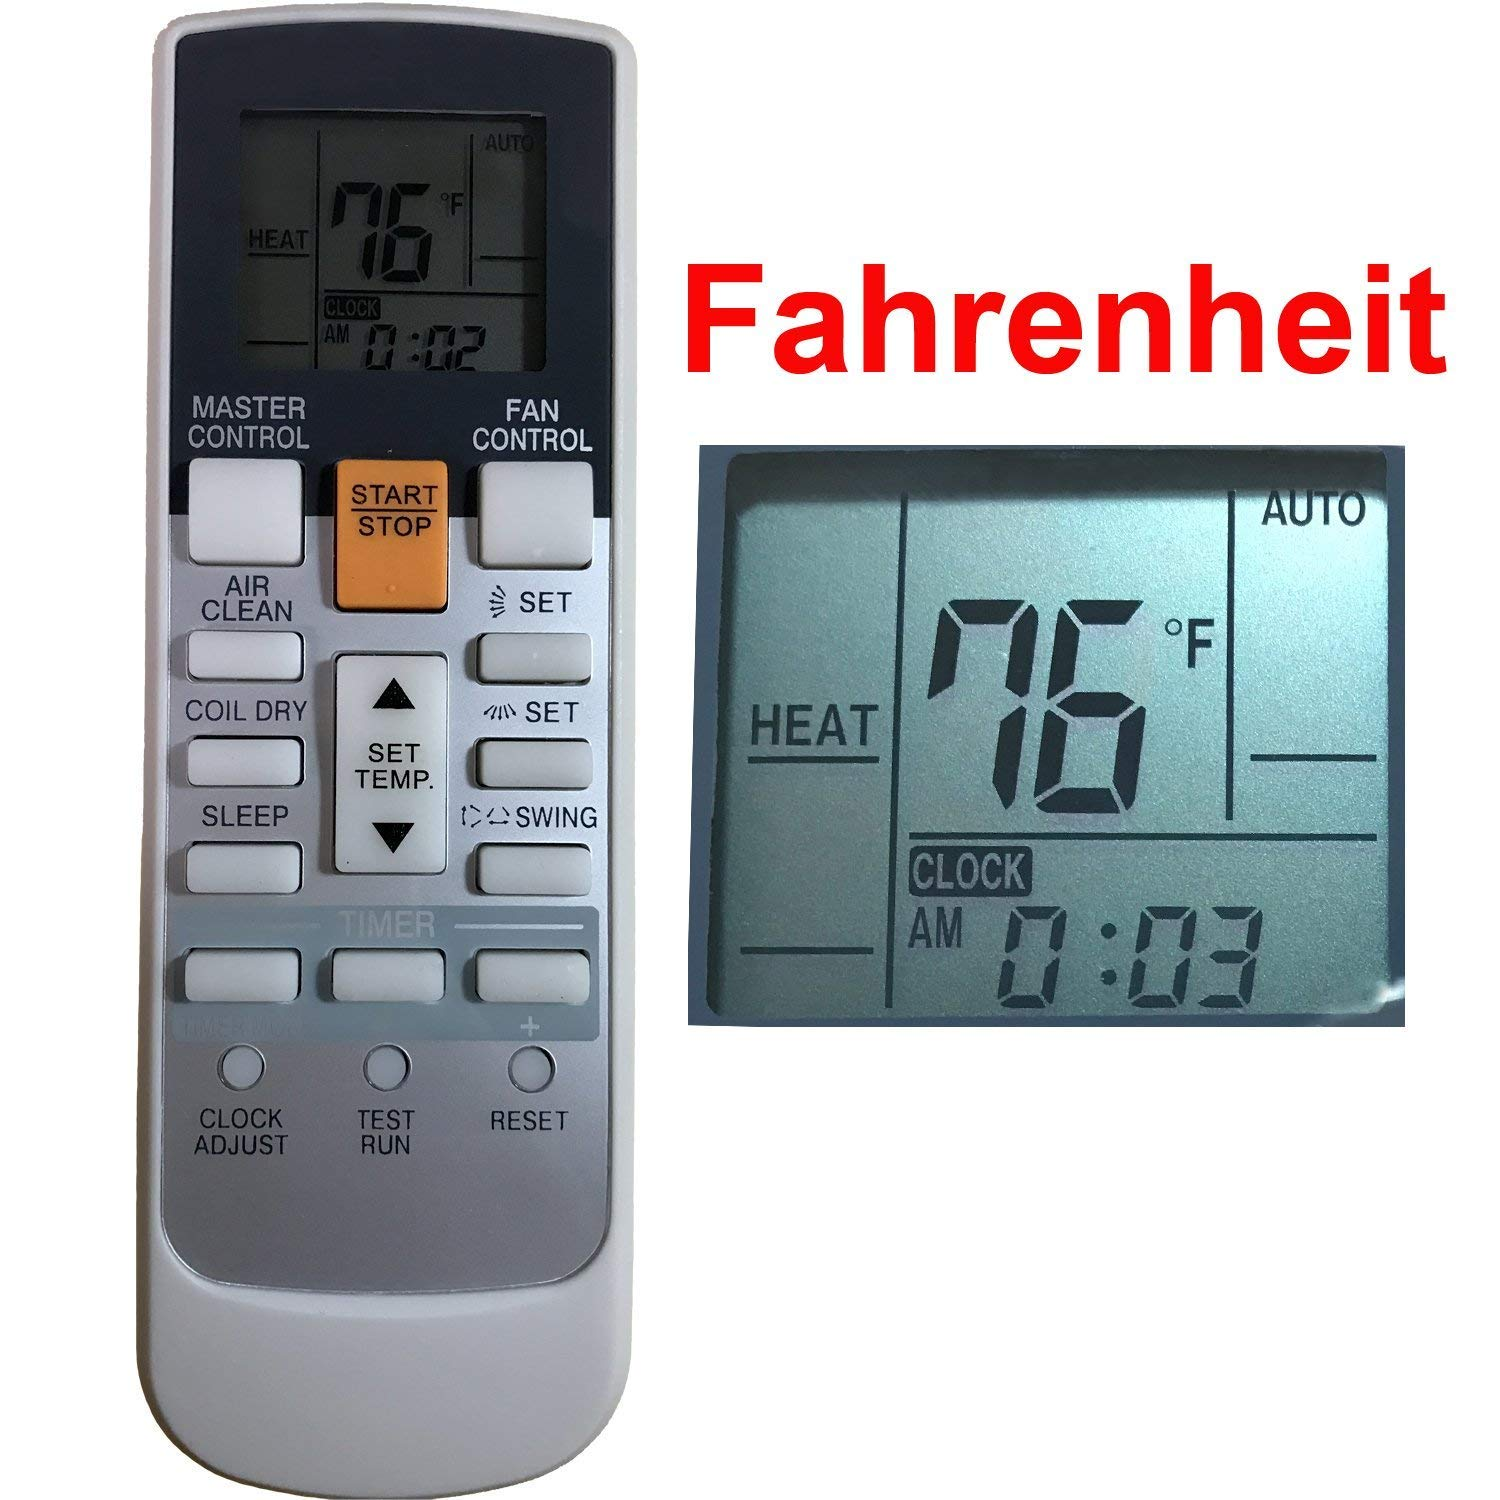 Air conditioner Parts Replacement for Fujitsu Air Conditioner Remote Control Ar-Rah2u Ar-Rah1u Ar-Rae2u Ar-Rae1u Ar-Ry3 Ar-Ry4 Ar-Ry5 Ar-Ry6 Ar-Ry7 Ar-Ry10 Ar-Ry11 Ar-Ry12 Ar-Ry14 Ar-Ry15 Ar-Ry16 Ar-Ry17 Ar-Ry19 .. ..